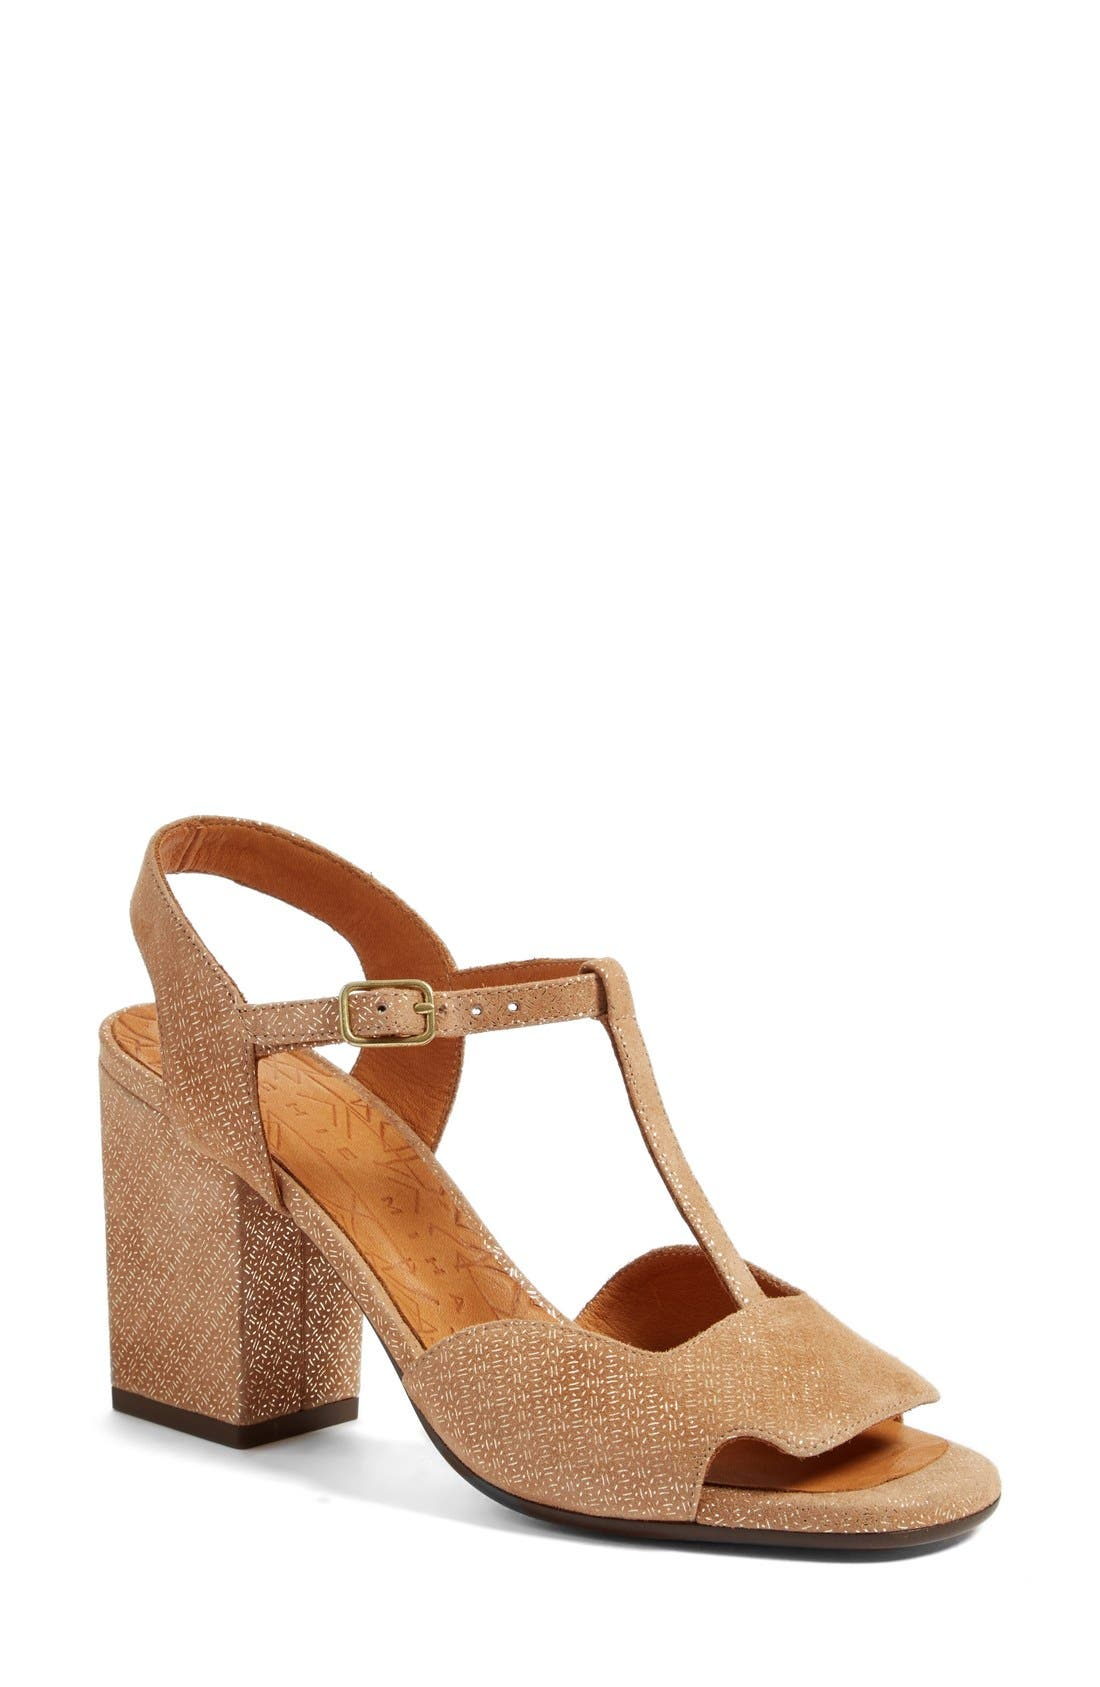 Alternate Image 1 Selected - Chie Mihara Birthe T-Strap Sandal (Women)